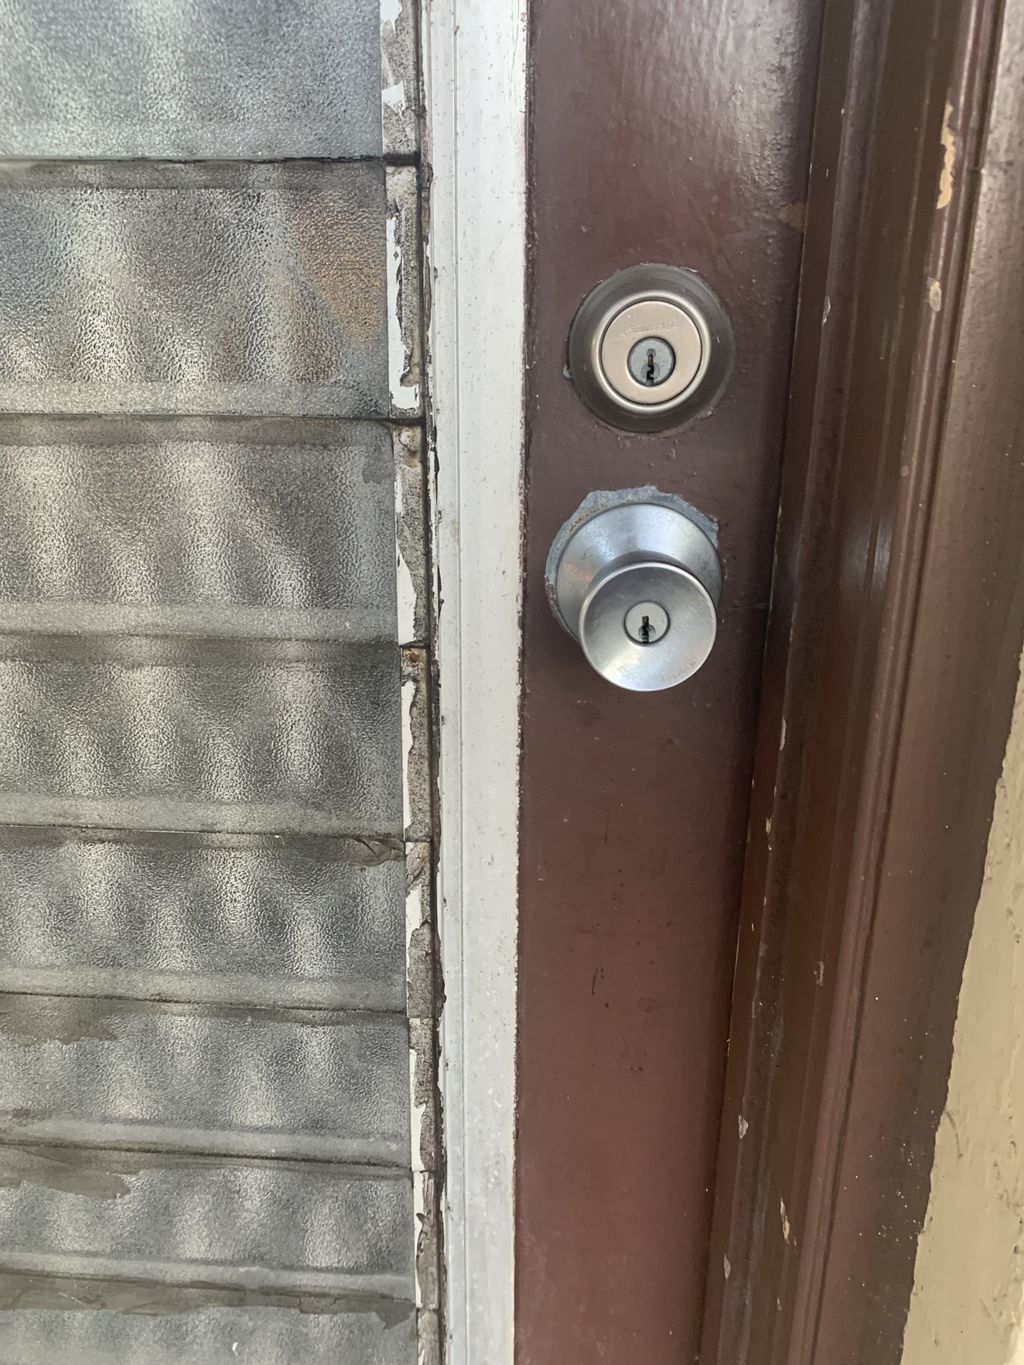 Lockout and replace locks